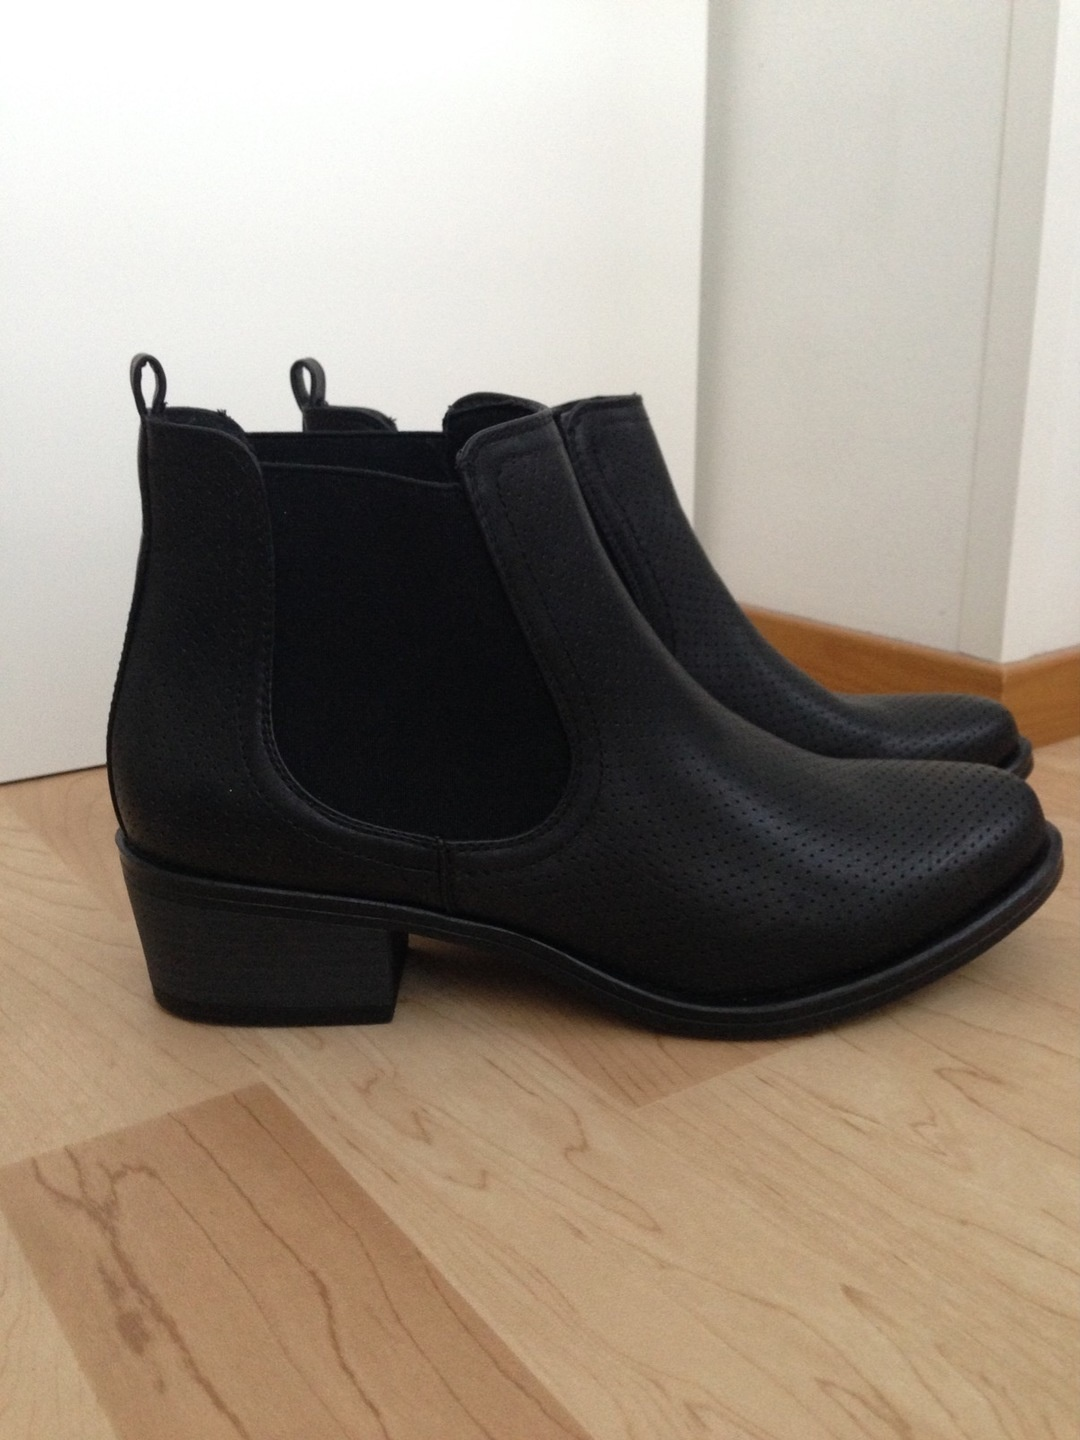 Women's boots - EVEN&ODD photo 1